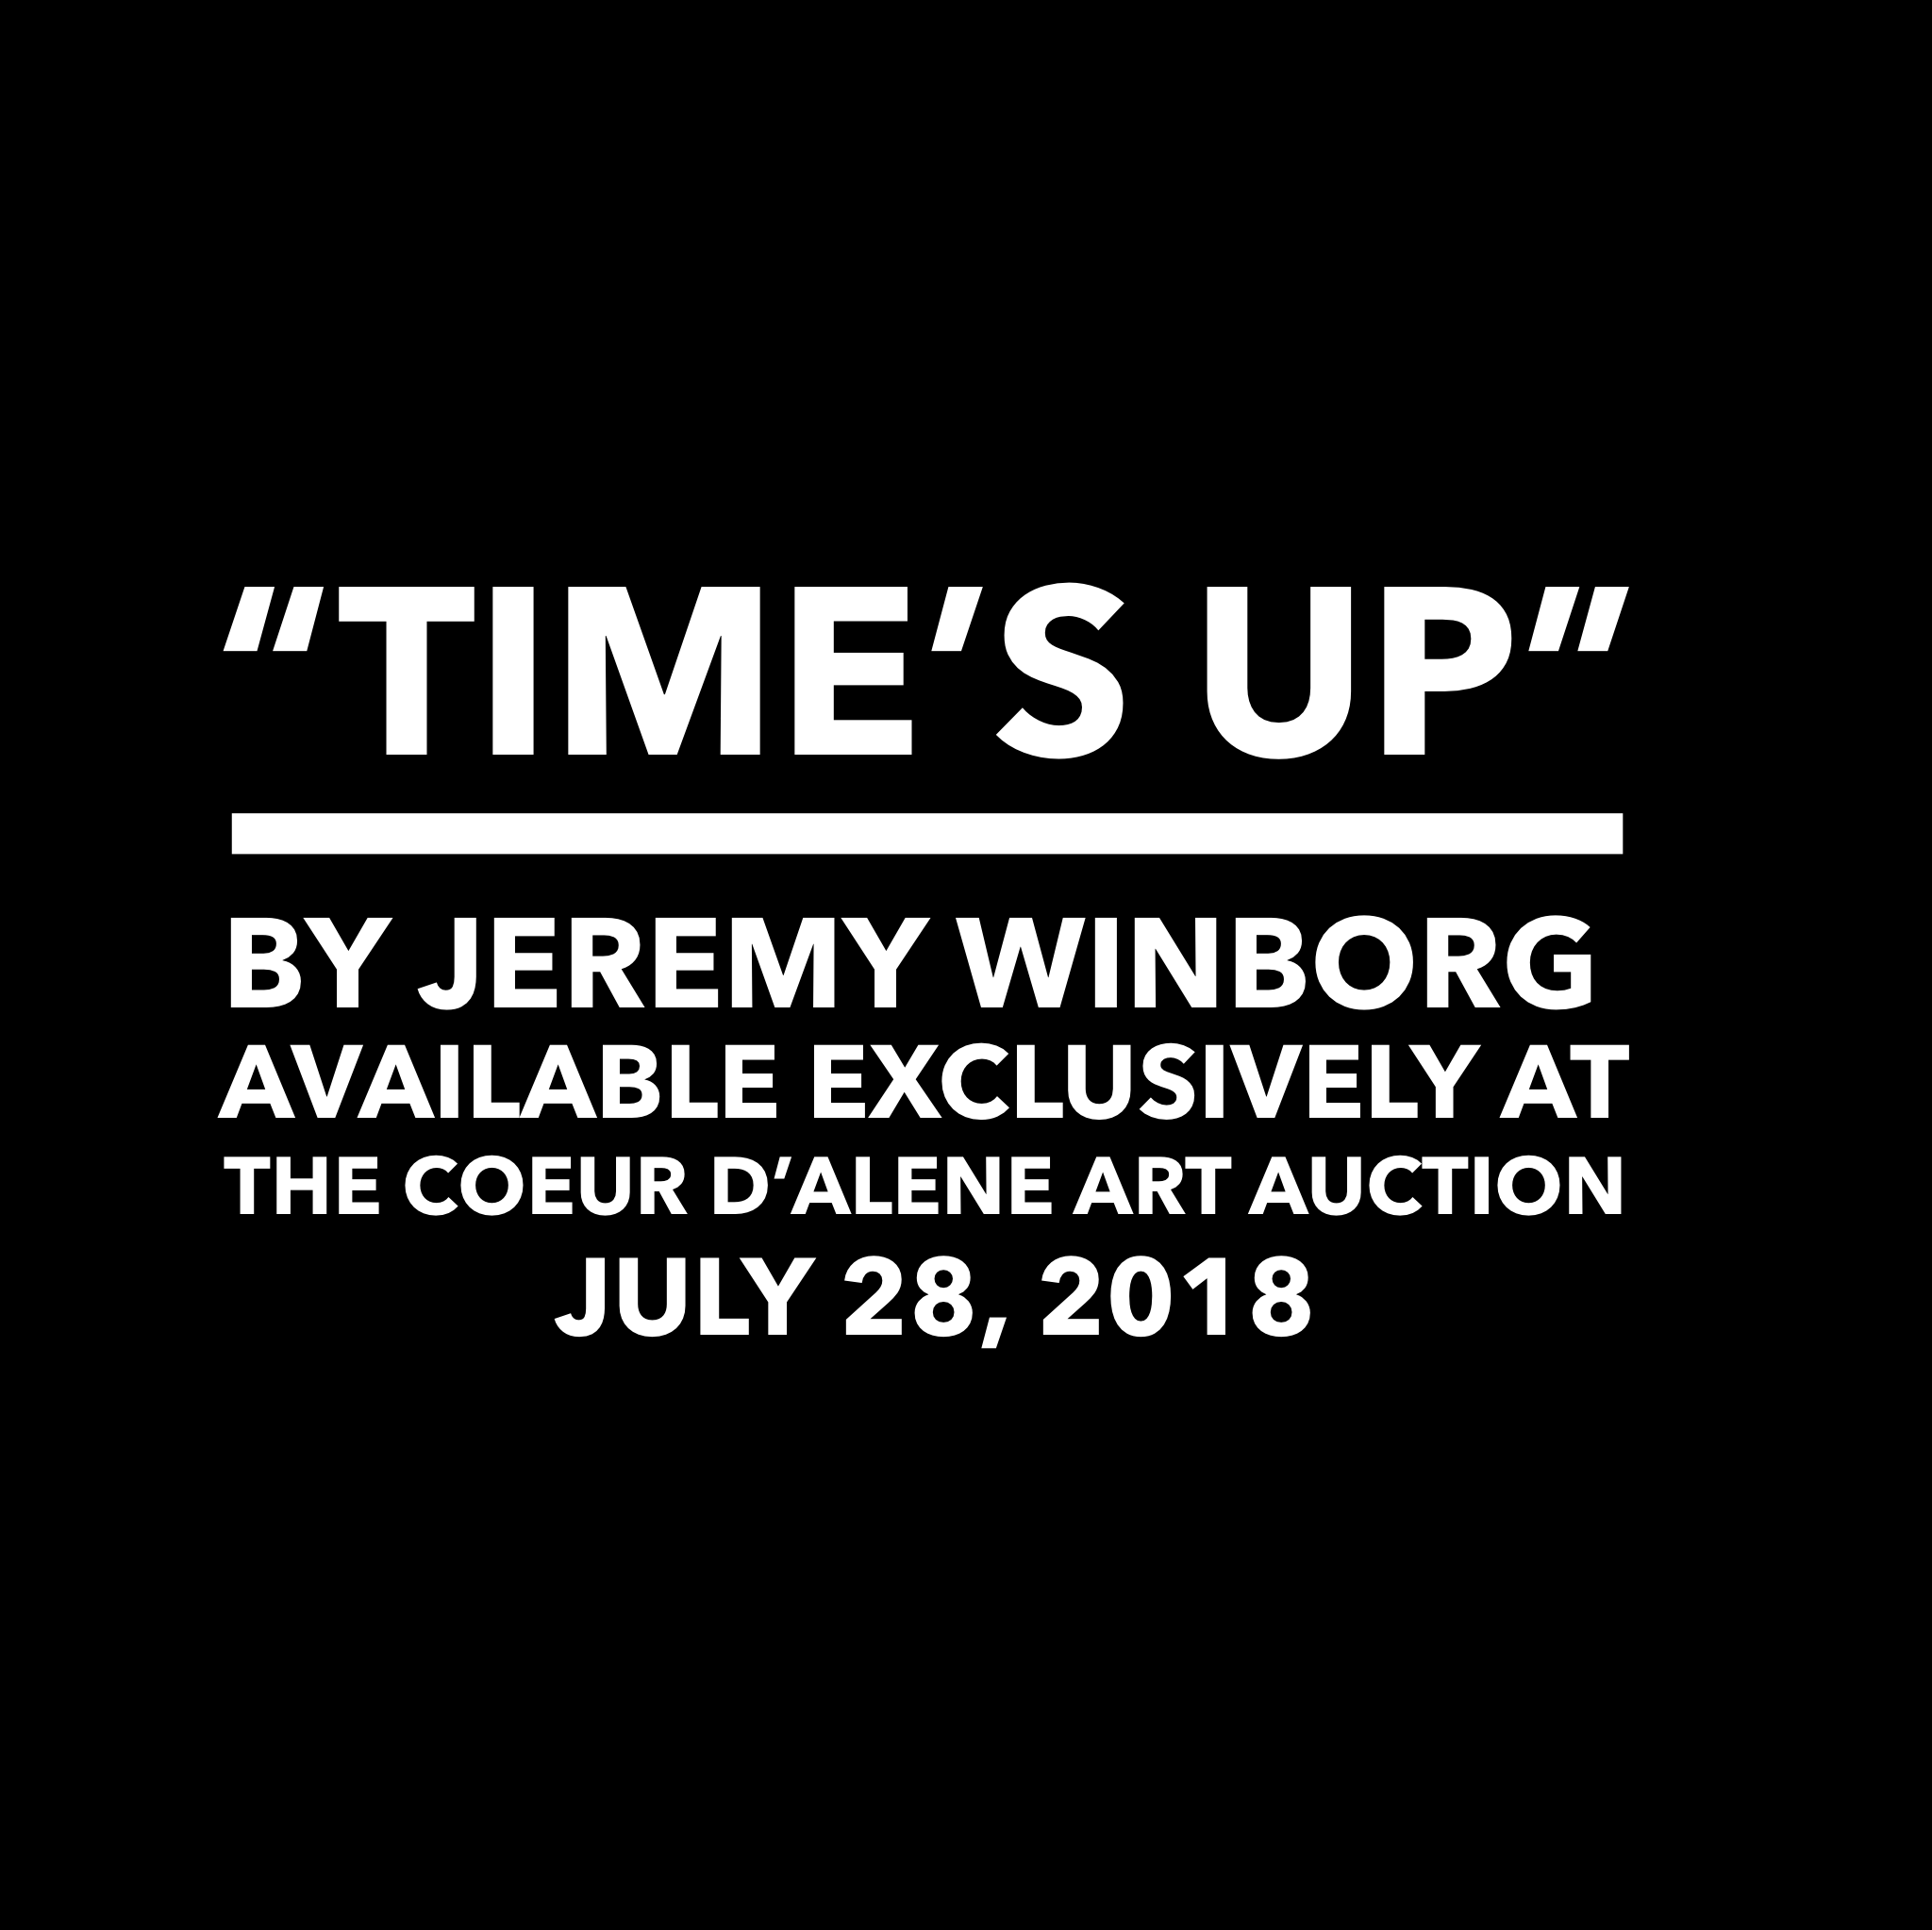 coeur-dalene-are-auction-info-jeremy-winborg.png